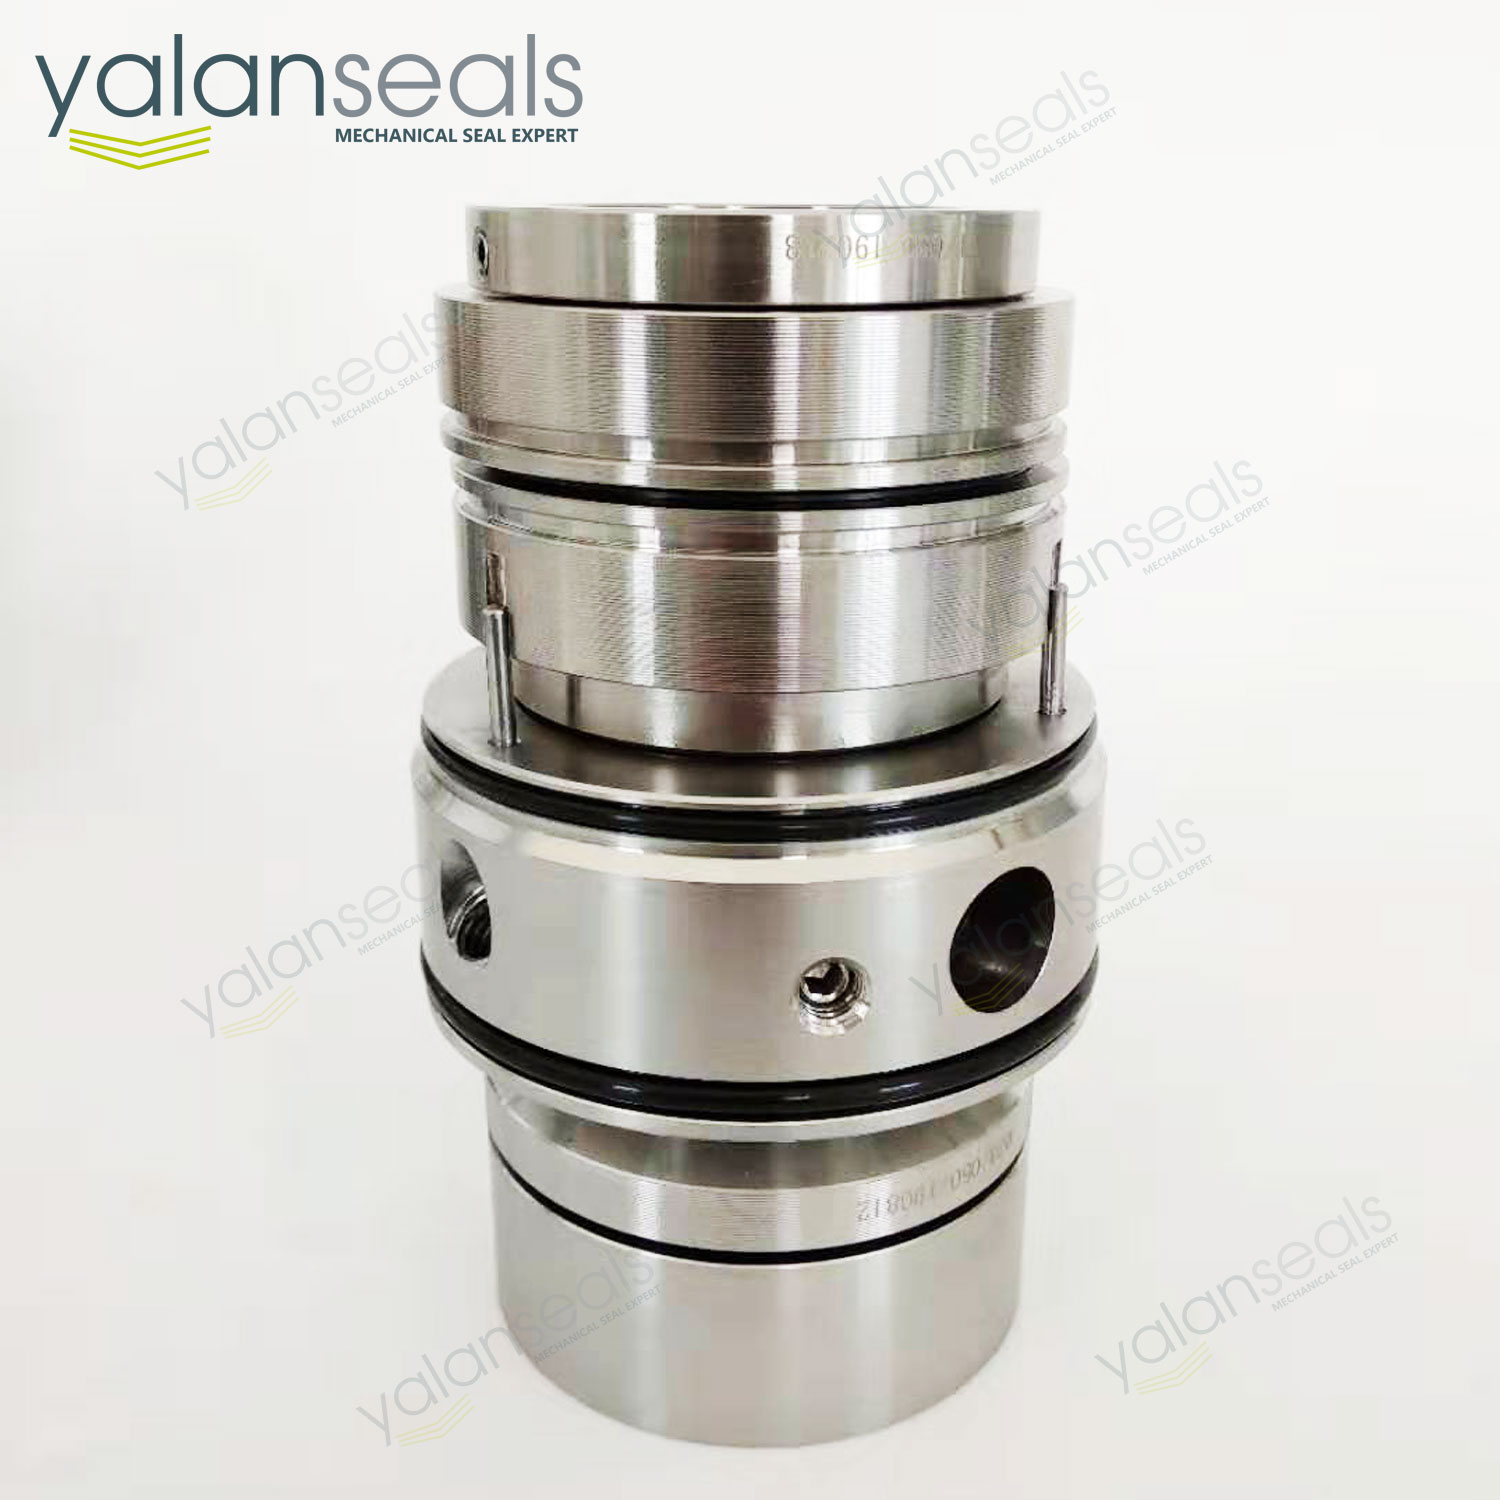 JCS2P Double End Mechanical Seal